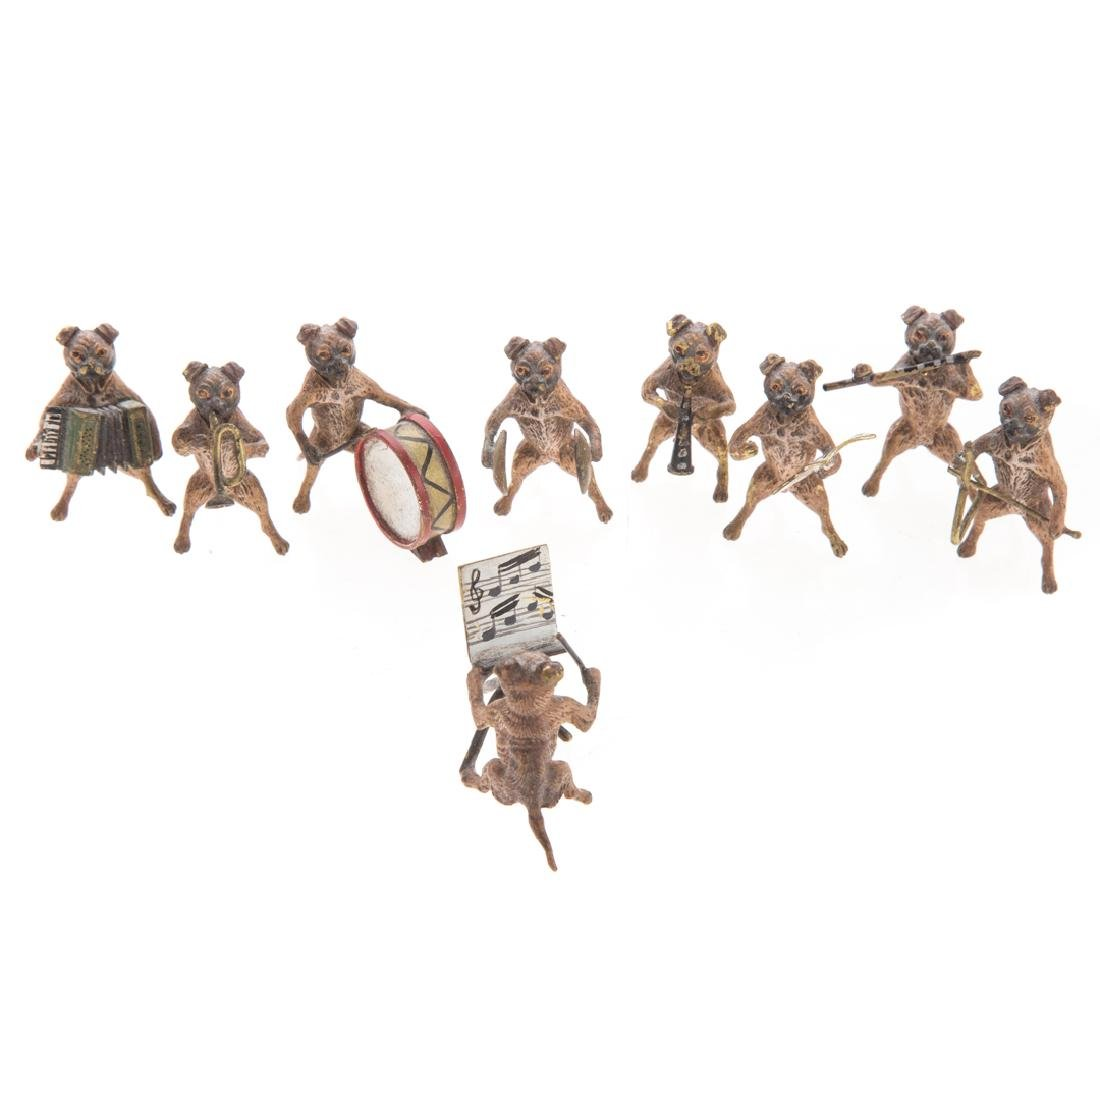 Vienna cold painted bronze dog band